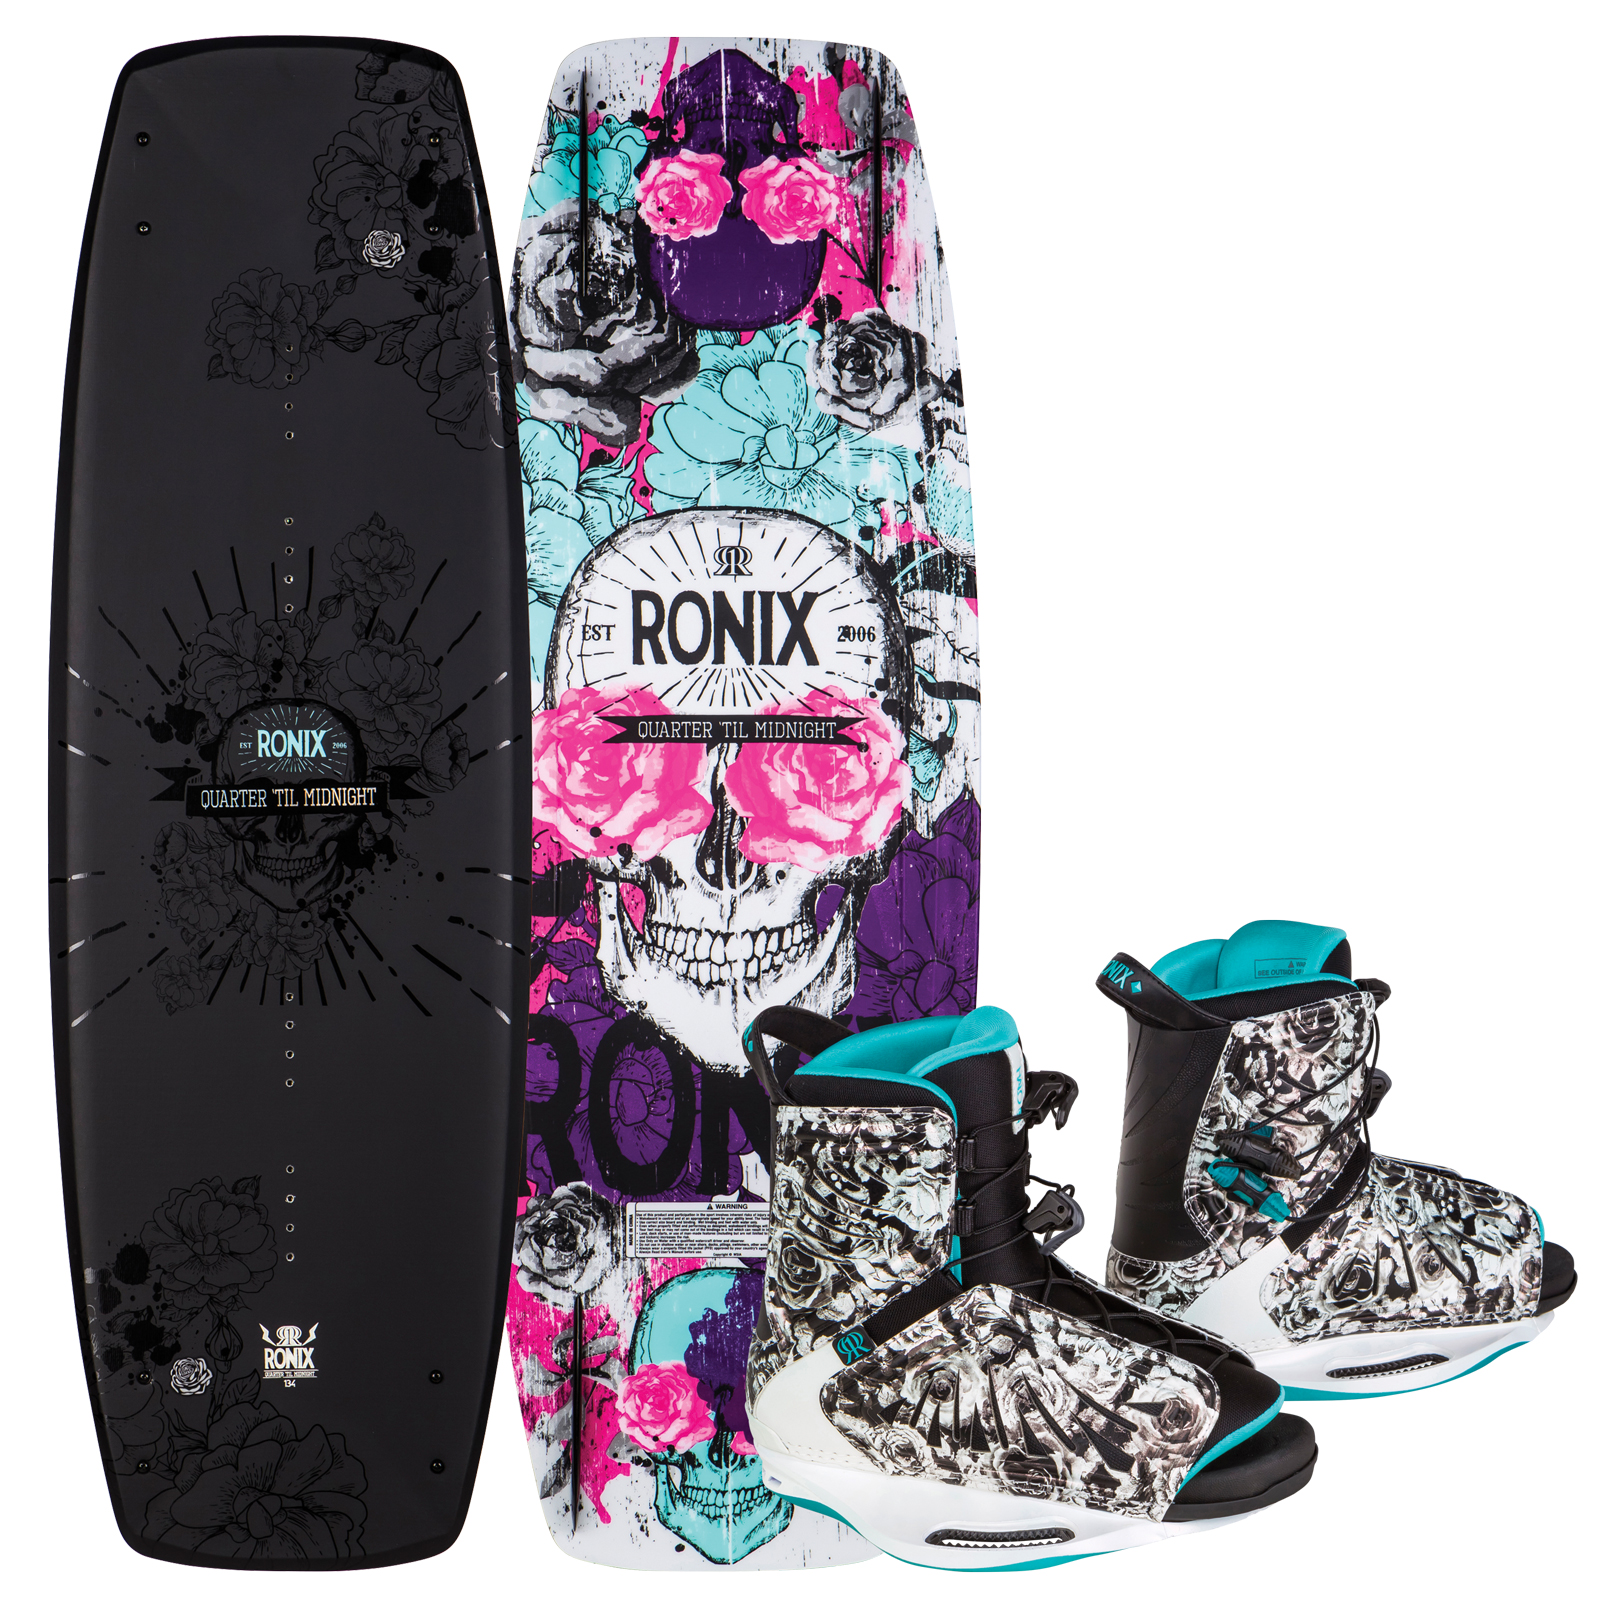 QUARTER 'TIL MIDNIGHT 134 W/ HALO PACKAGE RONIX 2017